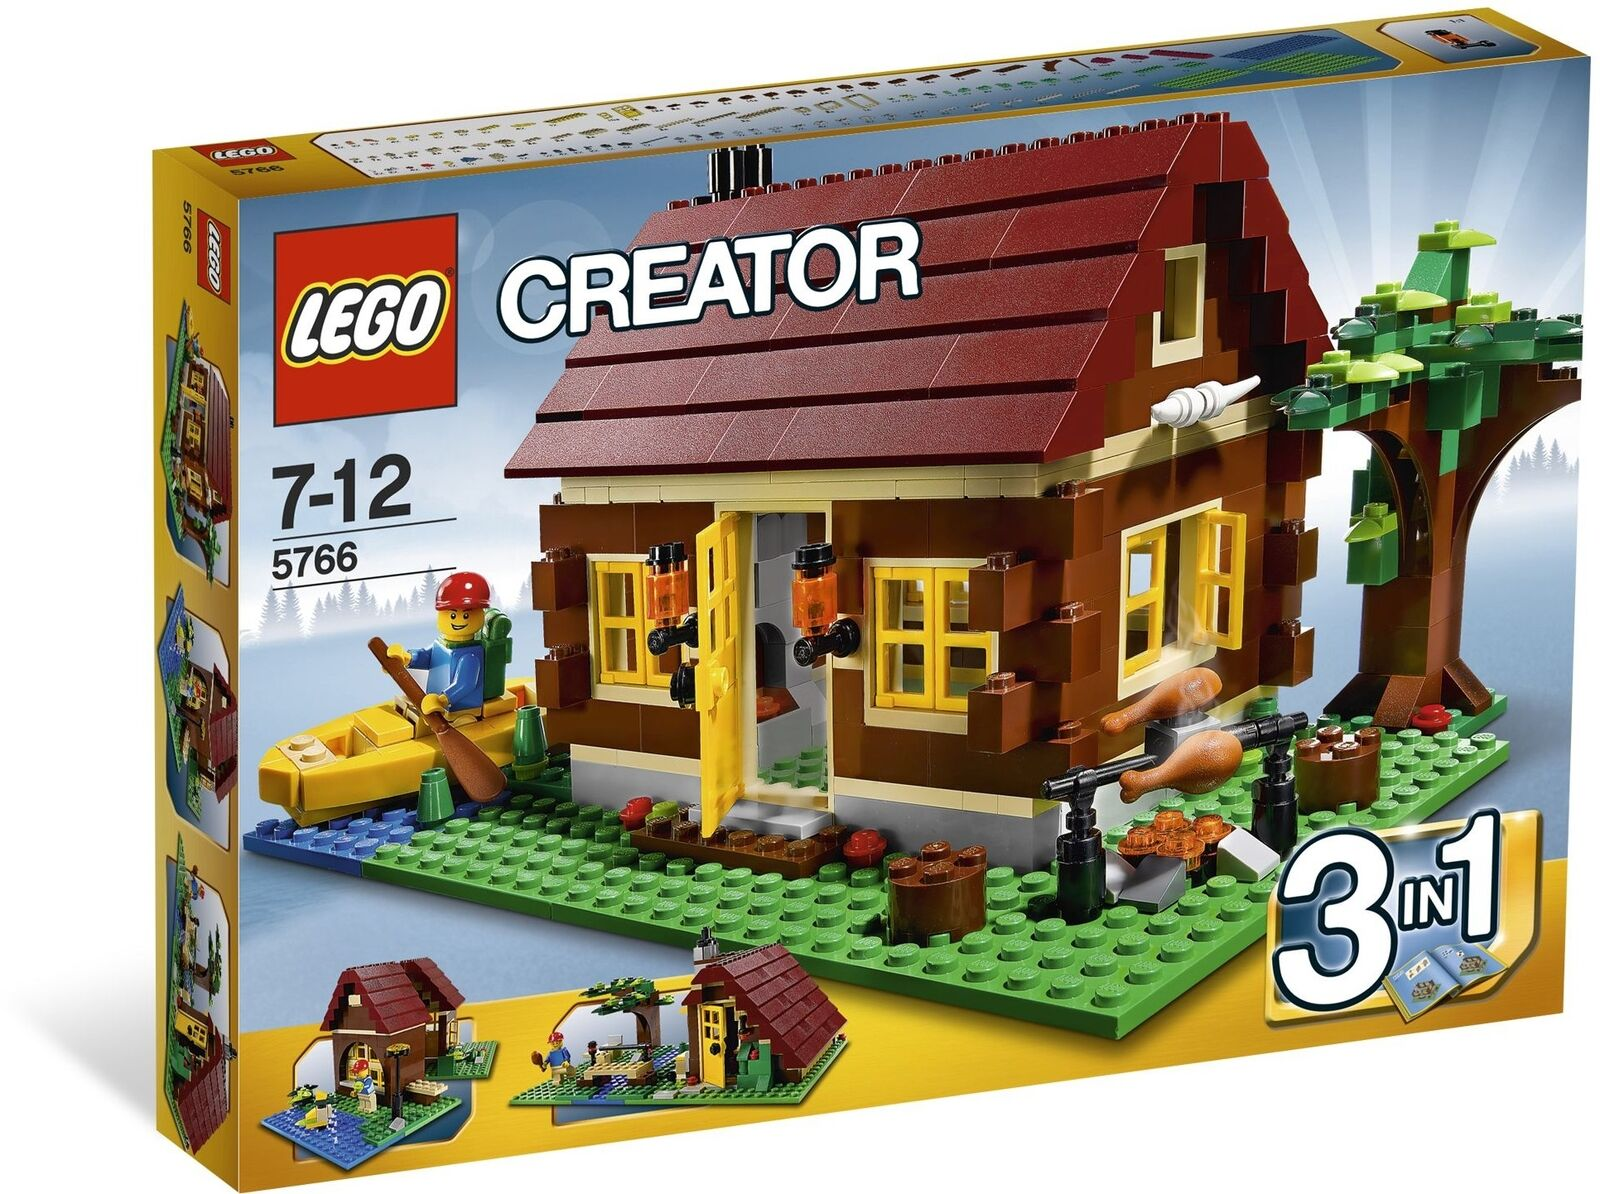 Brand New Lego Creator 5766 Log Cabin 3 in 1 Factory Sealed RetiROT Set